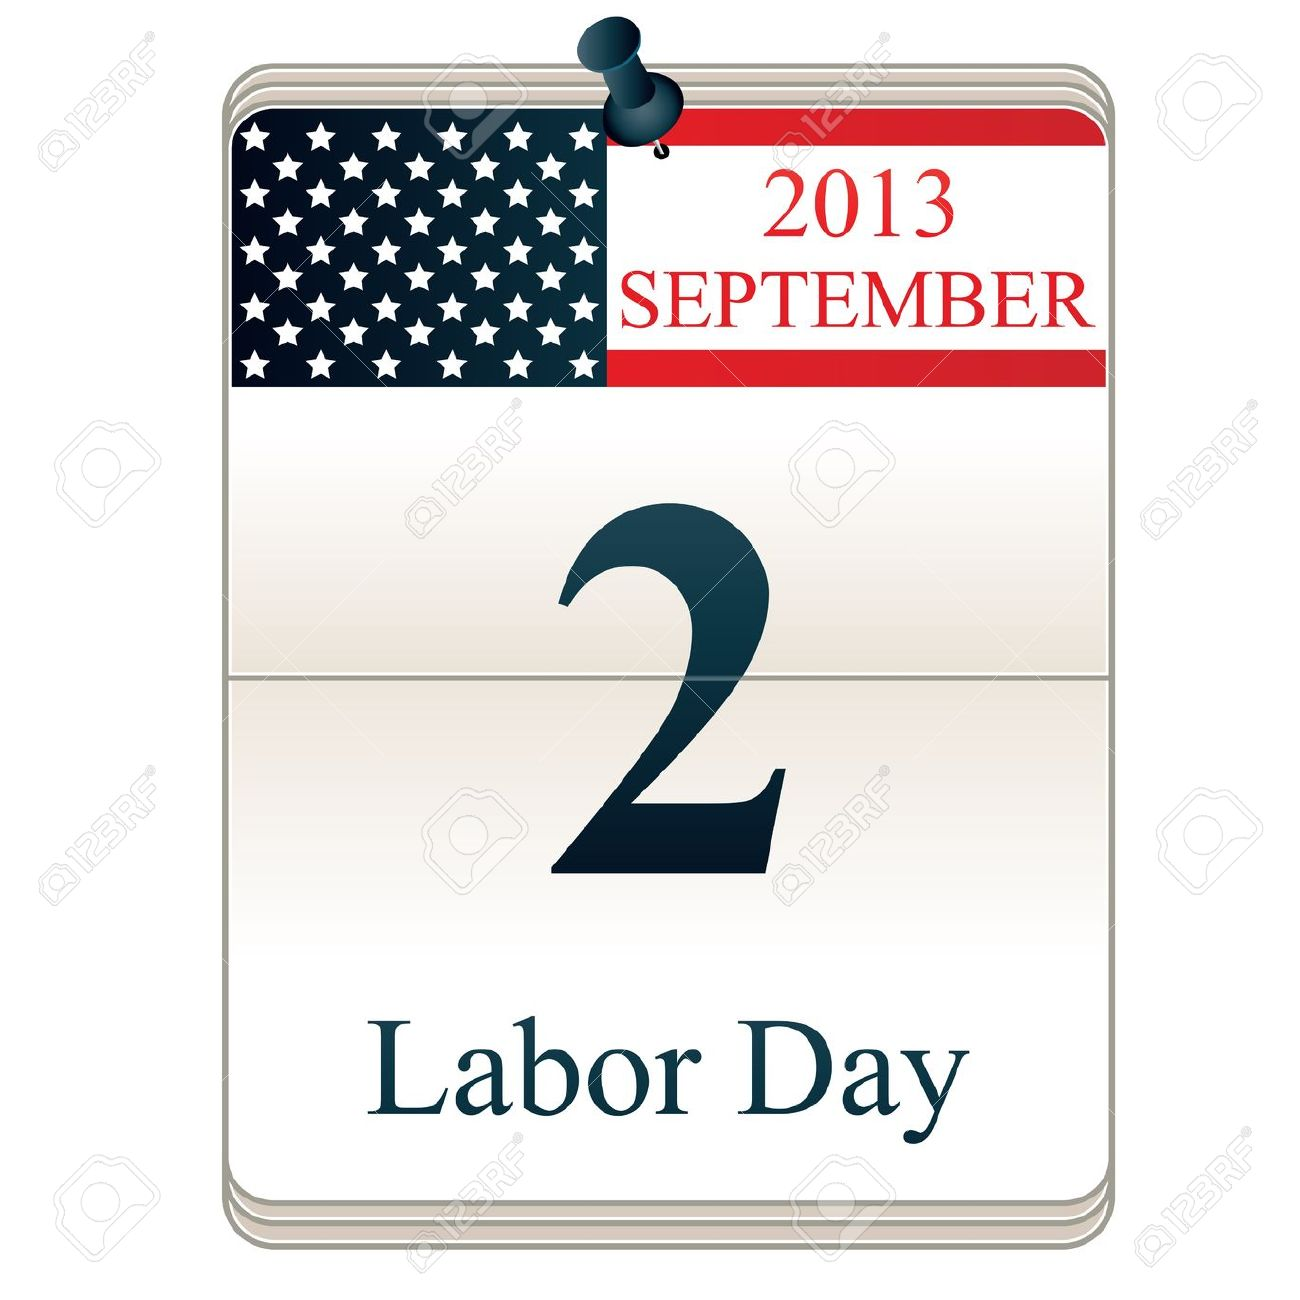 Vector Of Calendar For Labor Day With American Flag Royalty Free.